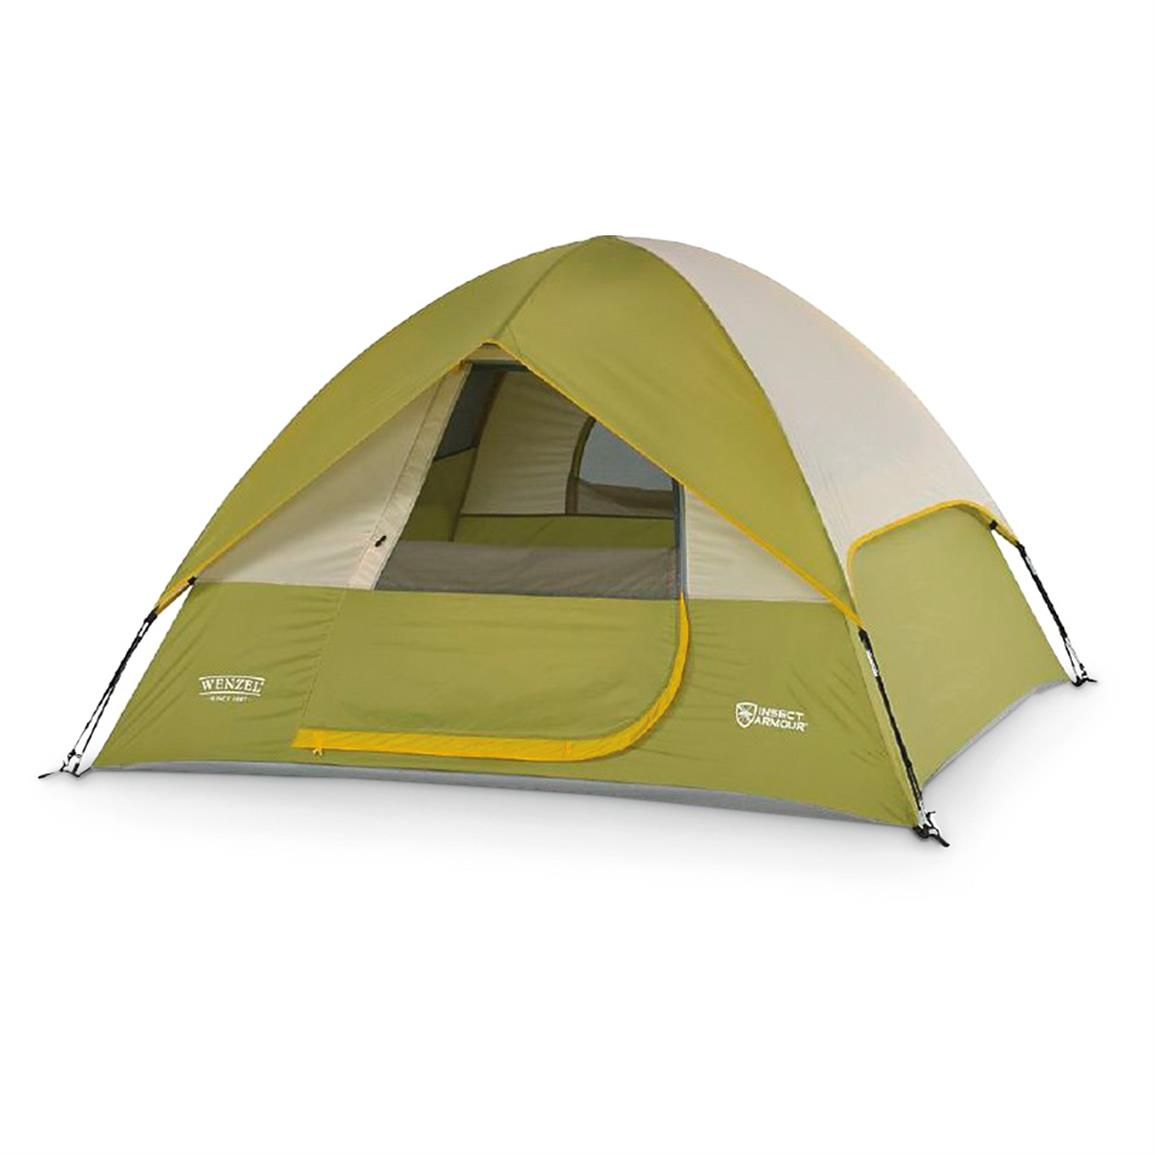 Wenzel Insect Armor 3 Tent